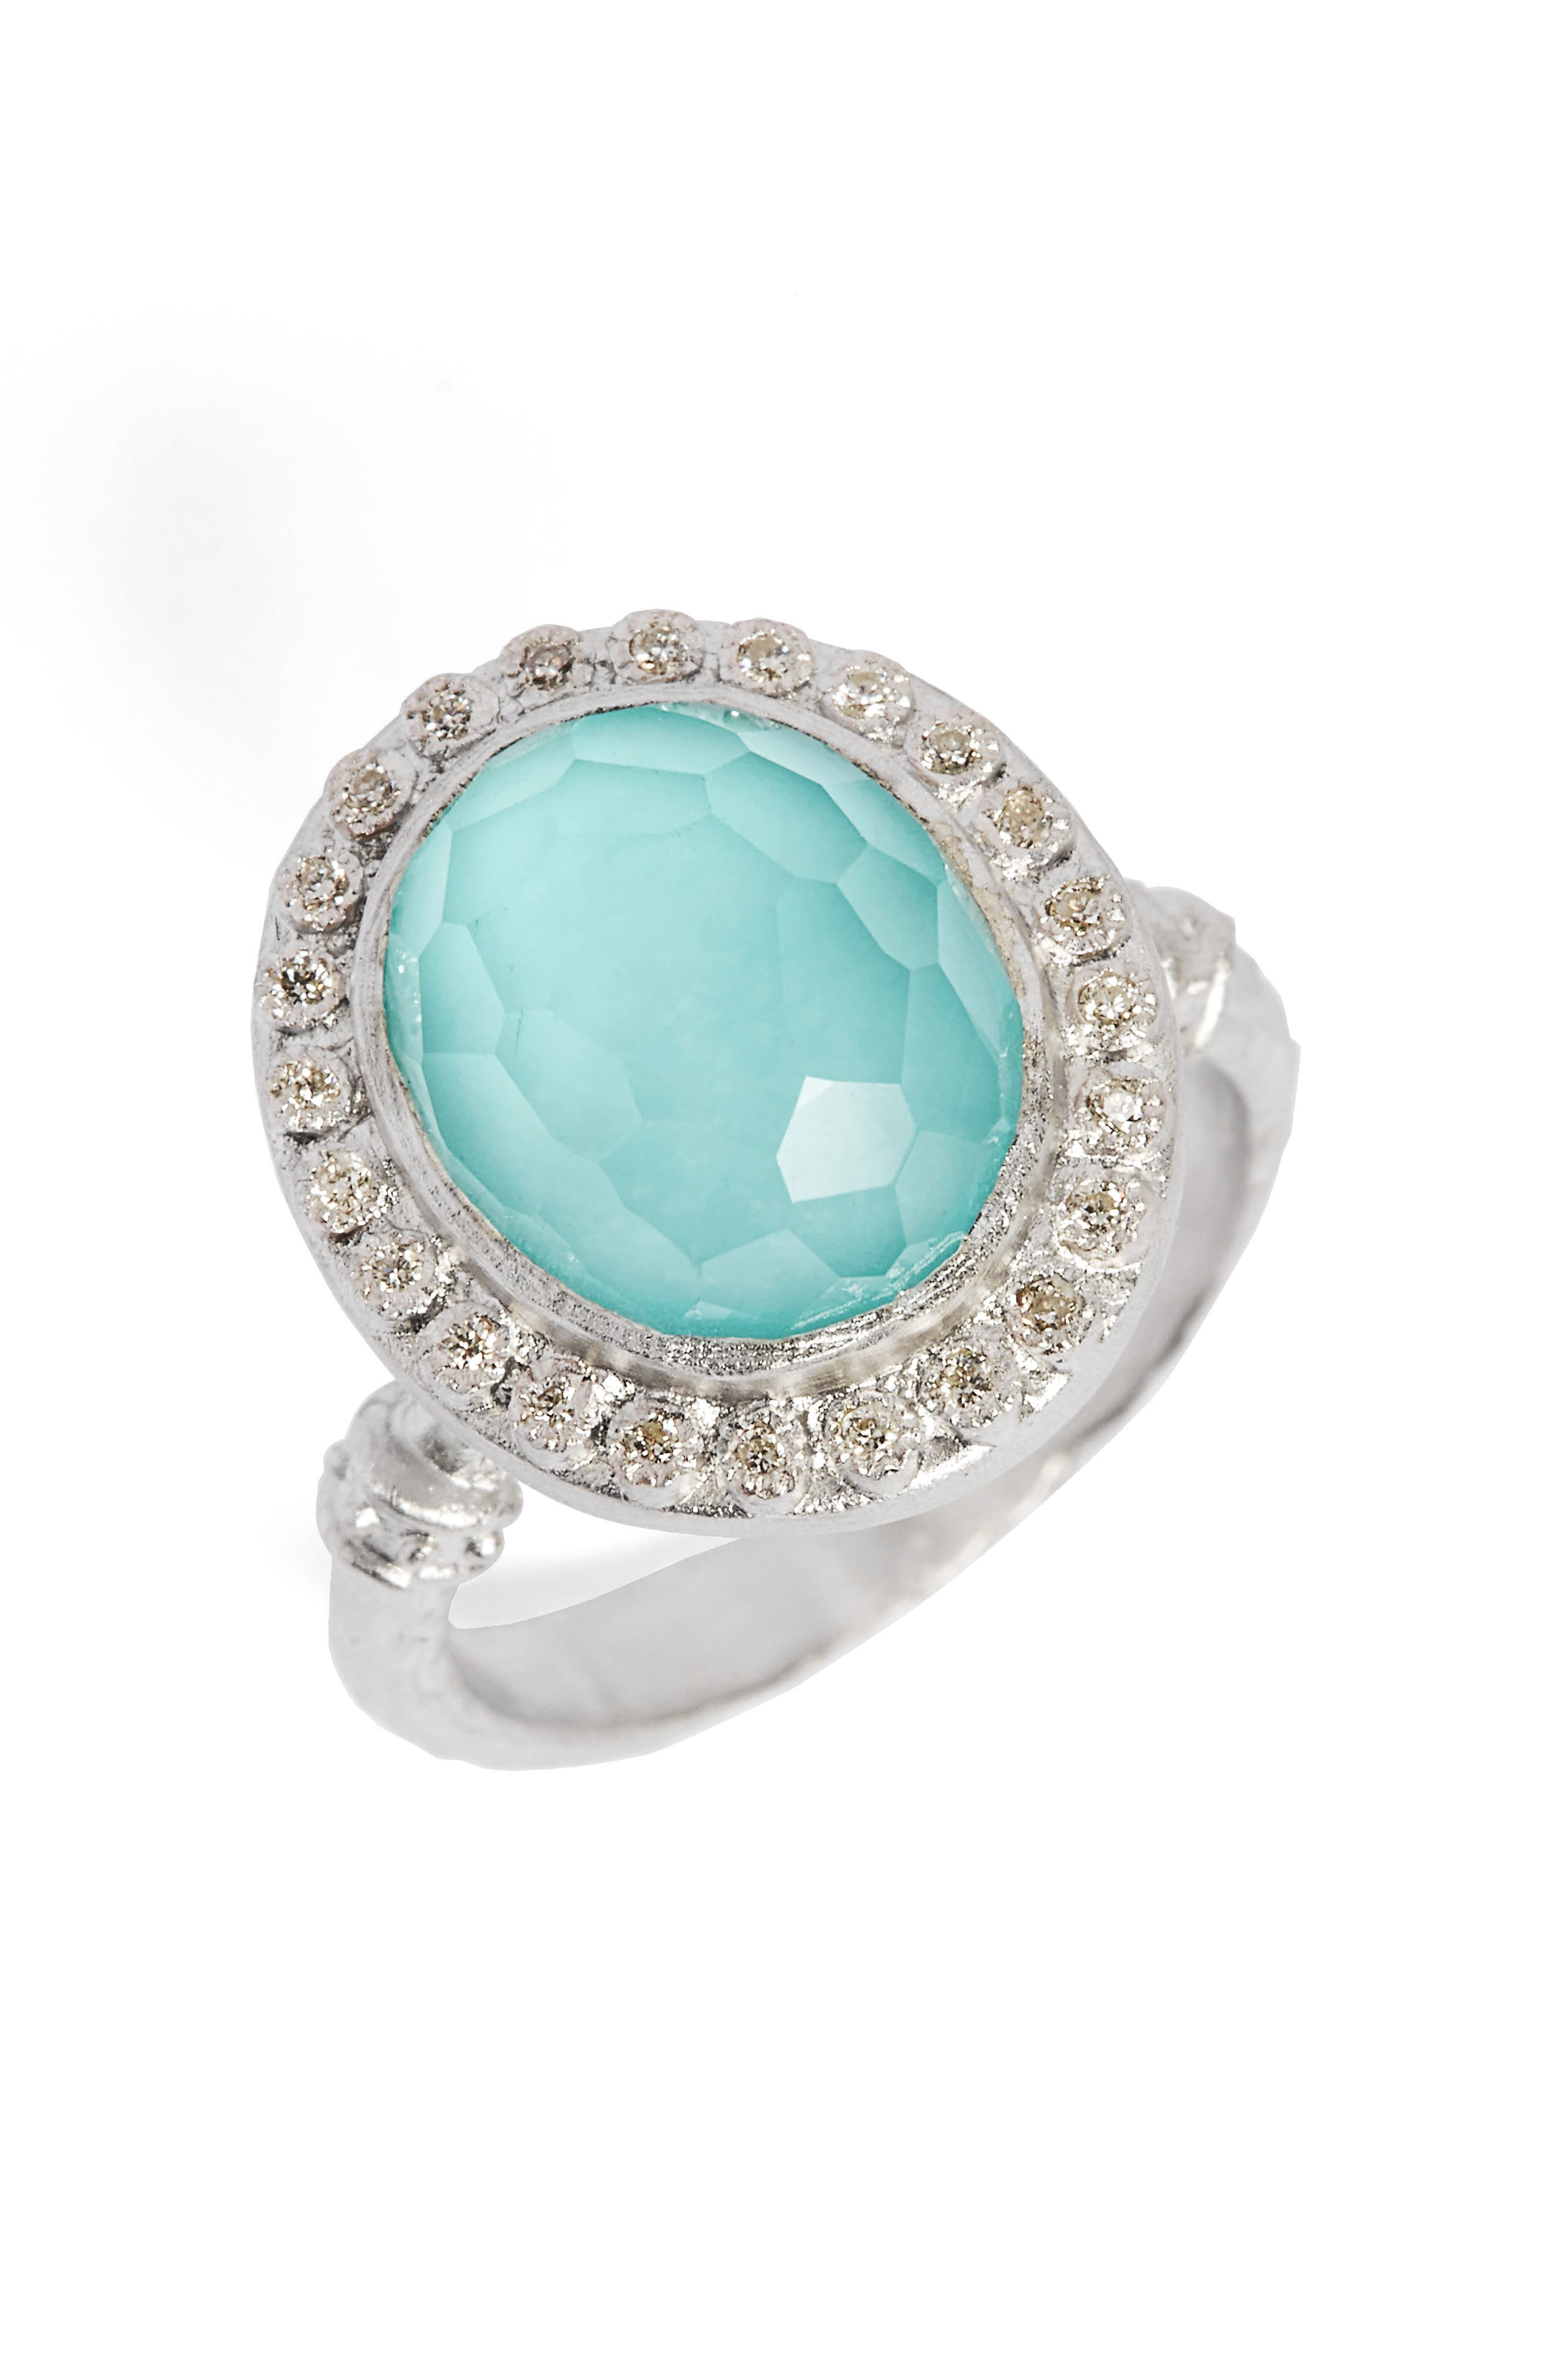 New World Diamond & Turquoise Ring,                         Main,                         color, Silver